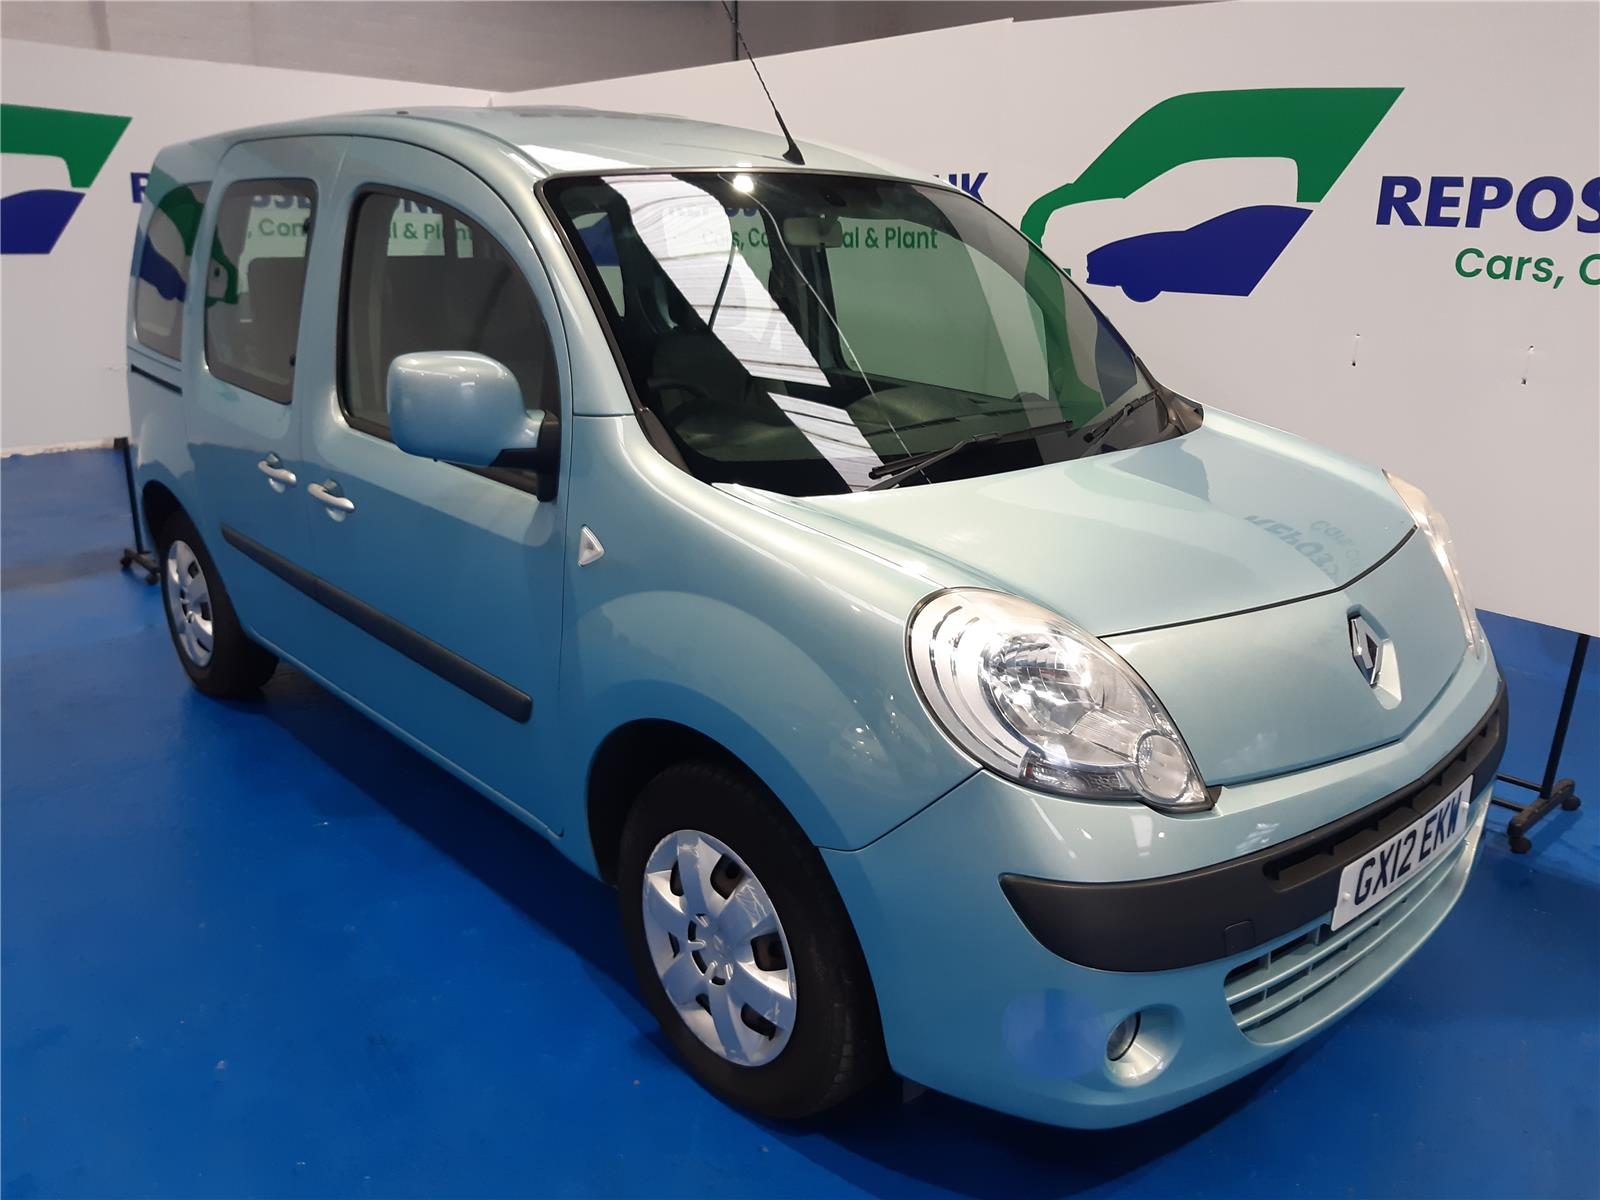 2012 RENAULT KANGOO EXPRESSION 16V 1598 PETROL AUTOMATIC 4 Speed 5 DOOR MPV